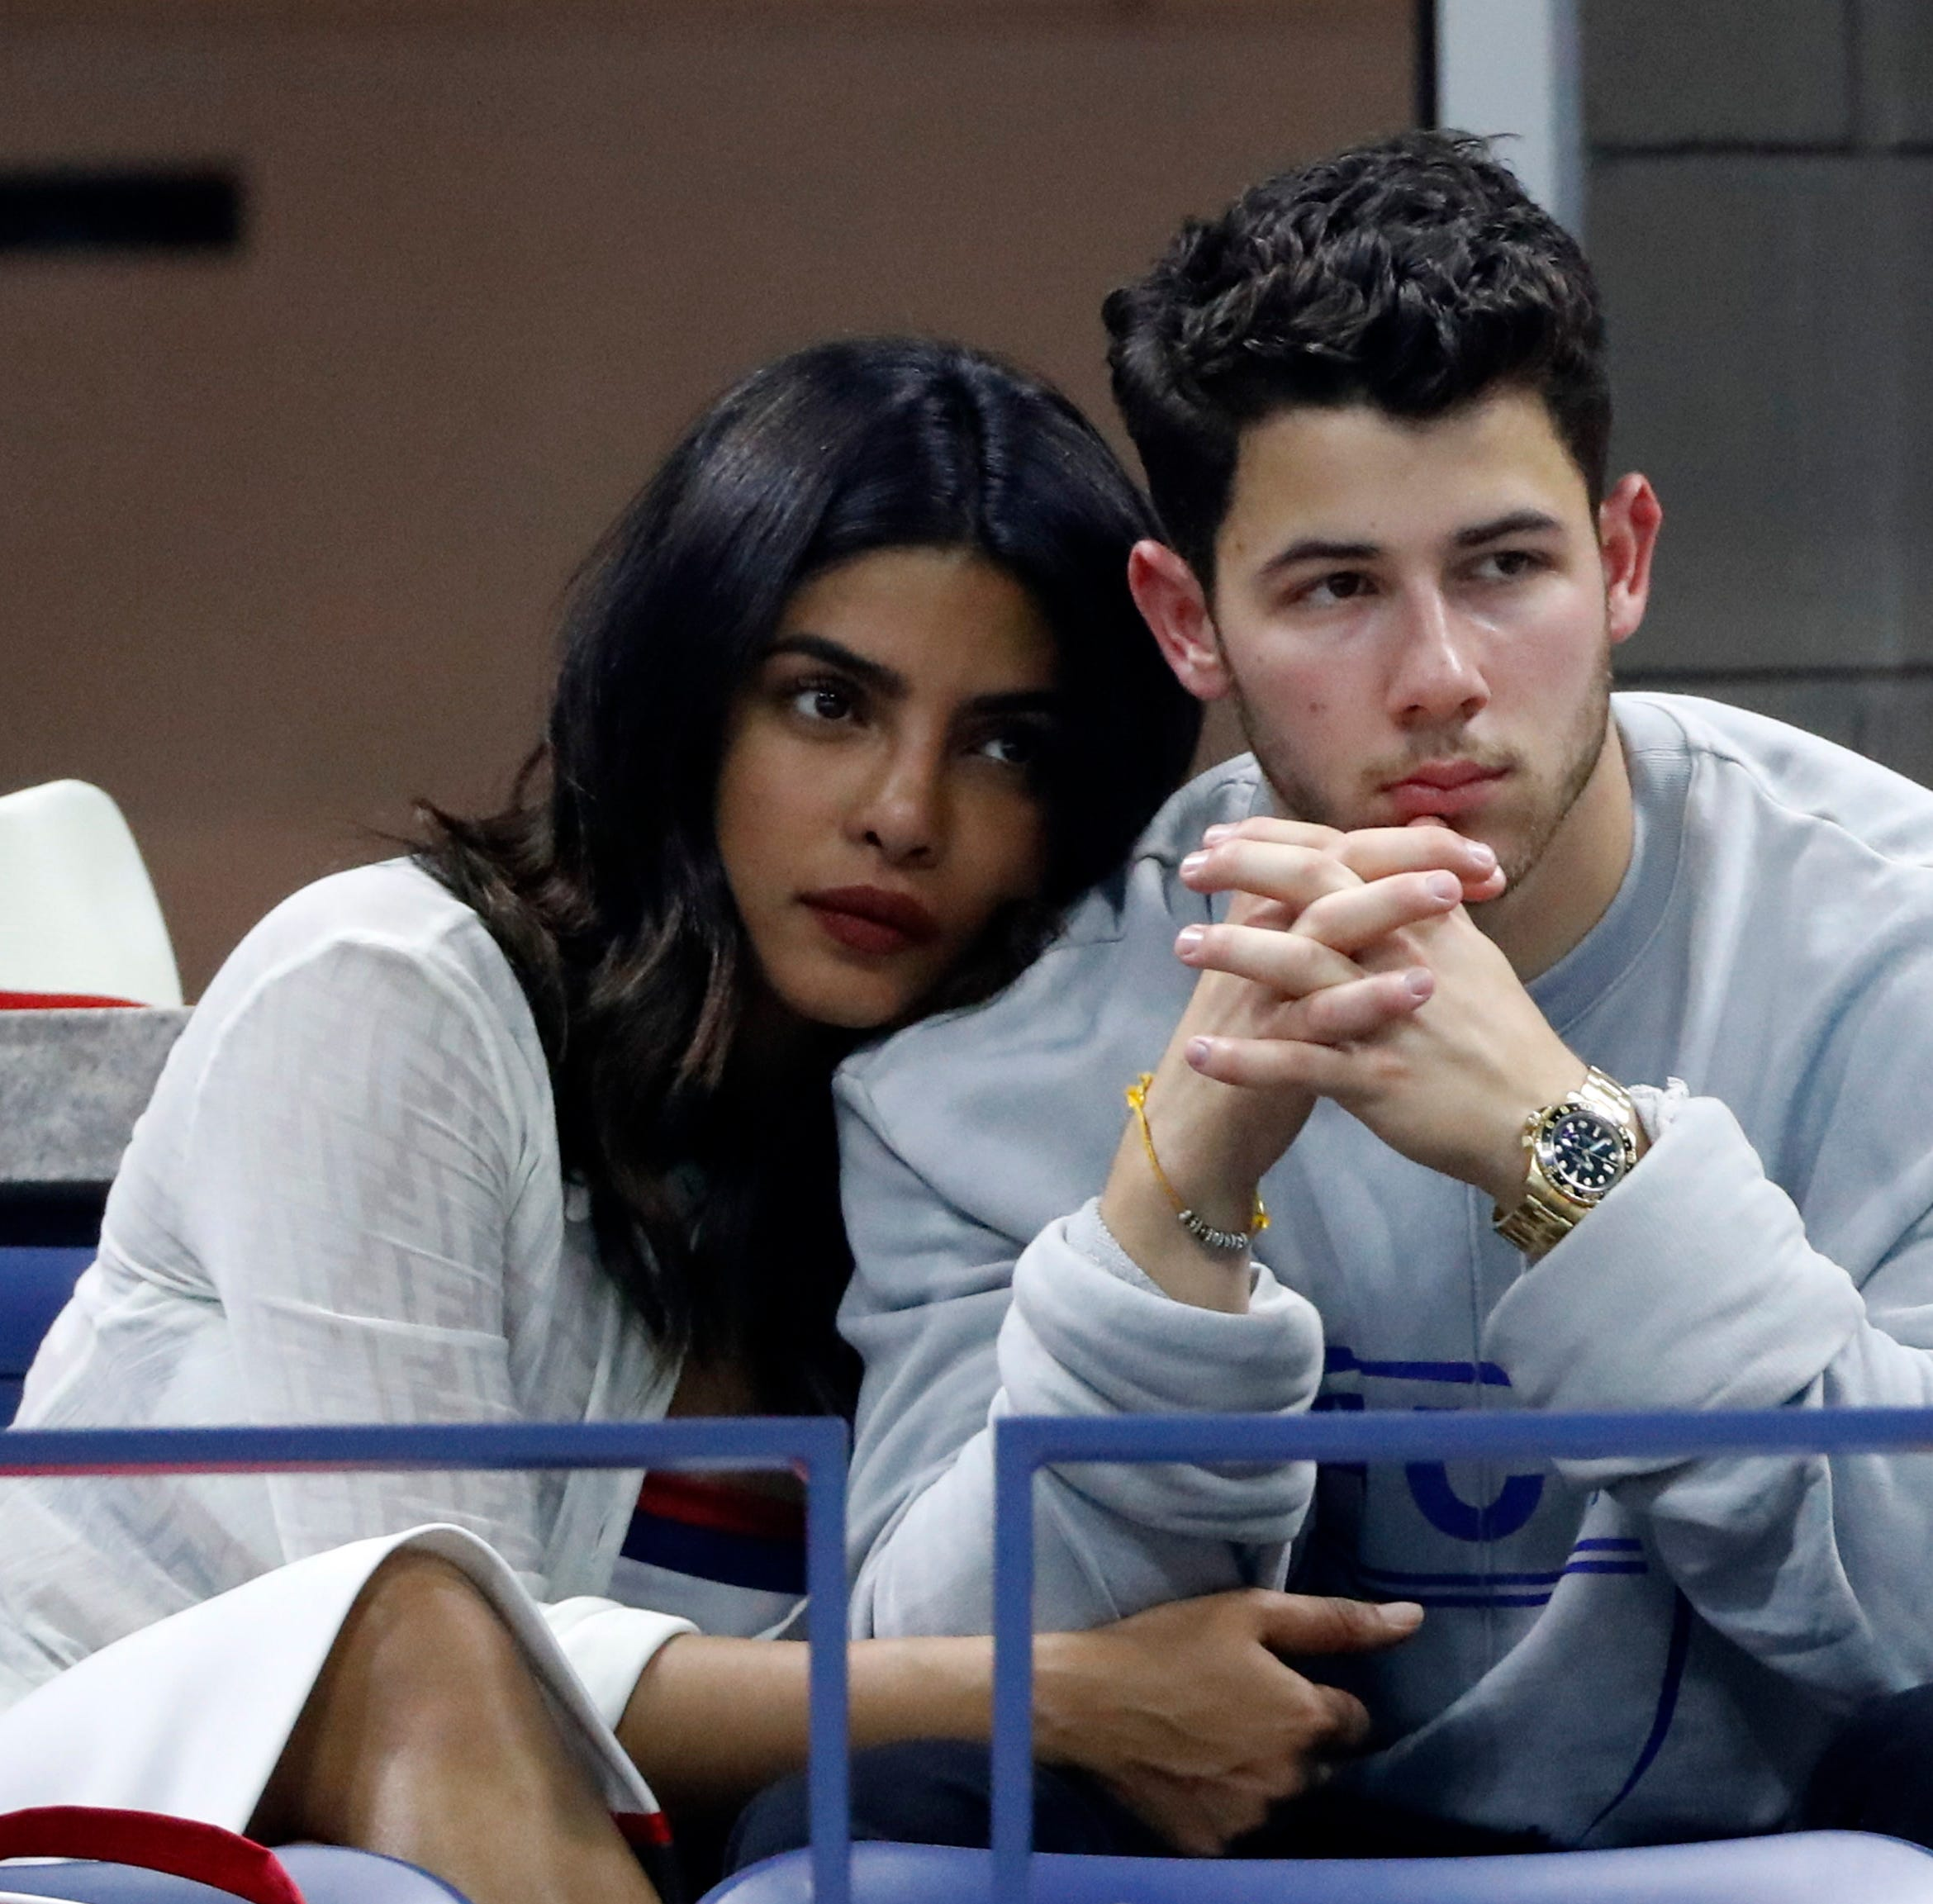 Priyanka Chopra and Nick Jonas at the US Open Tennis Championships in New York on Sept. 4, 2018.